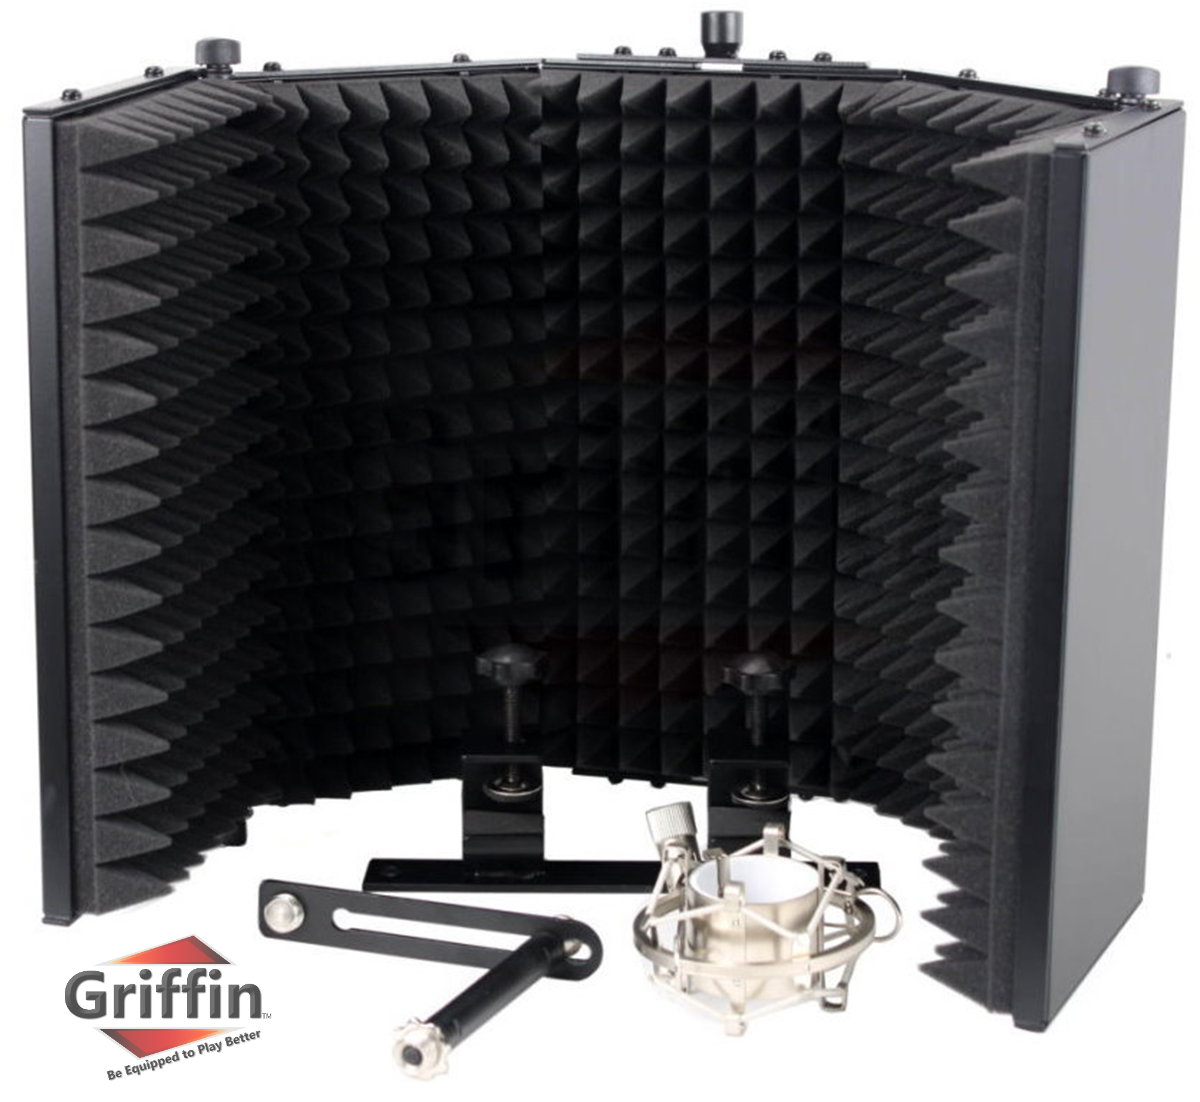 Studio Microphone Soundproofing Acoustic Foam Panel by Griffin Soundproof Filter Sound Diffusion Mic Booth Shield Insulation Diffuser Noise Deadening/Absorbing/Barrier for Audio Music Recording